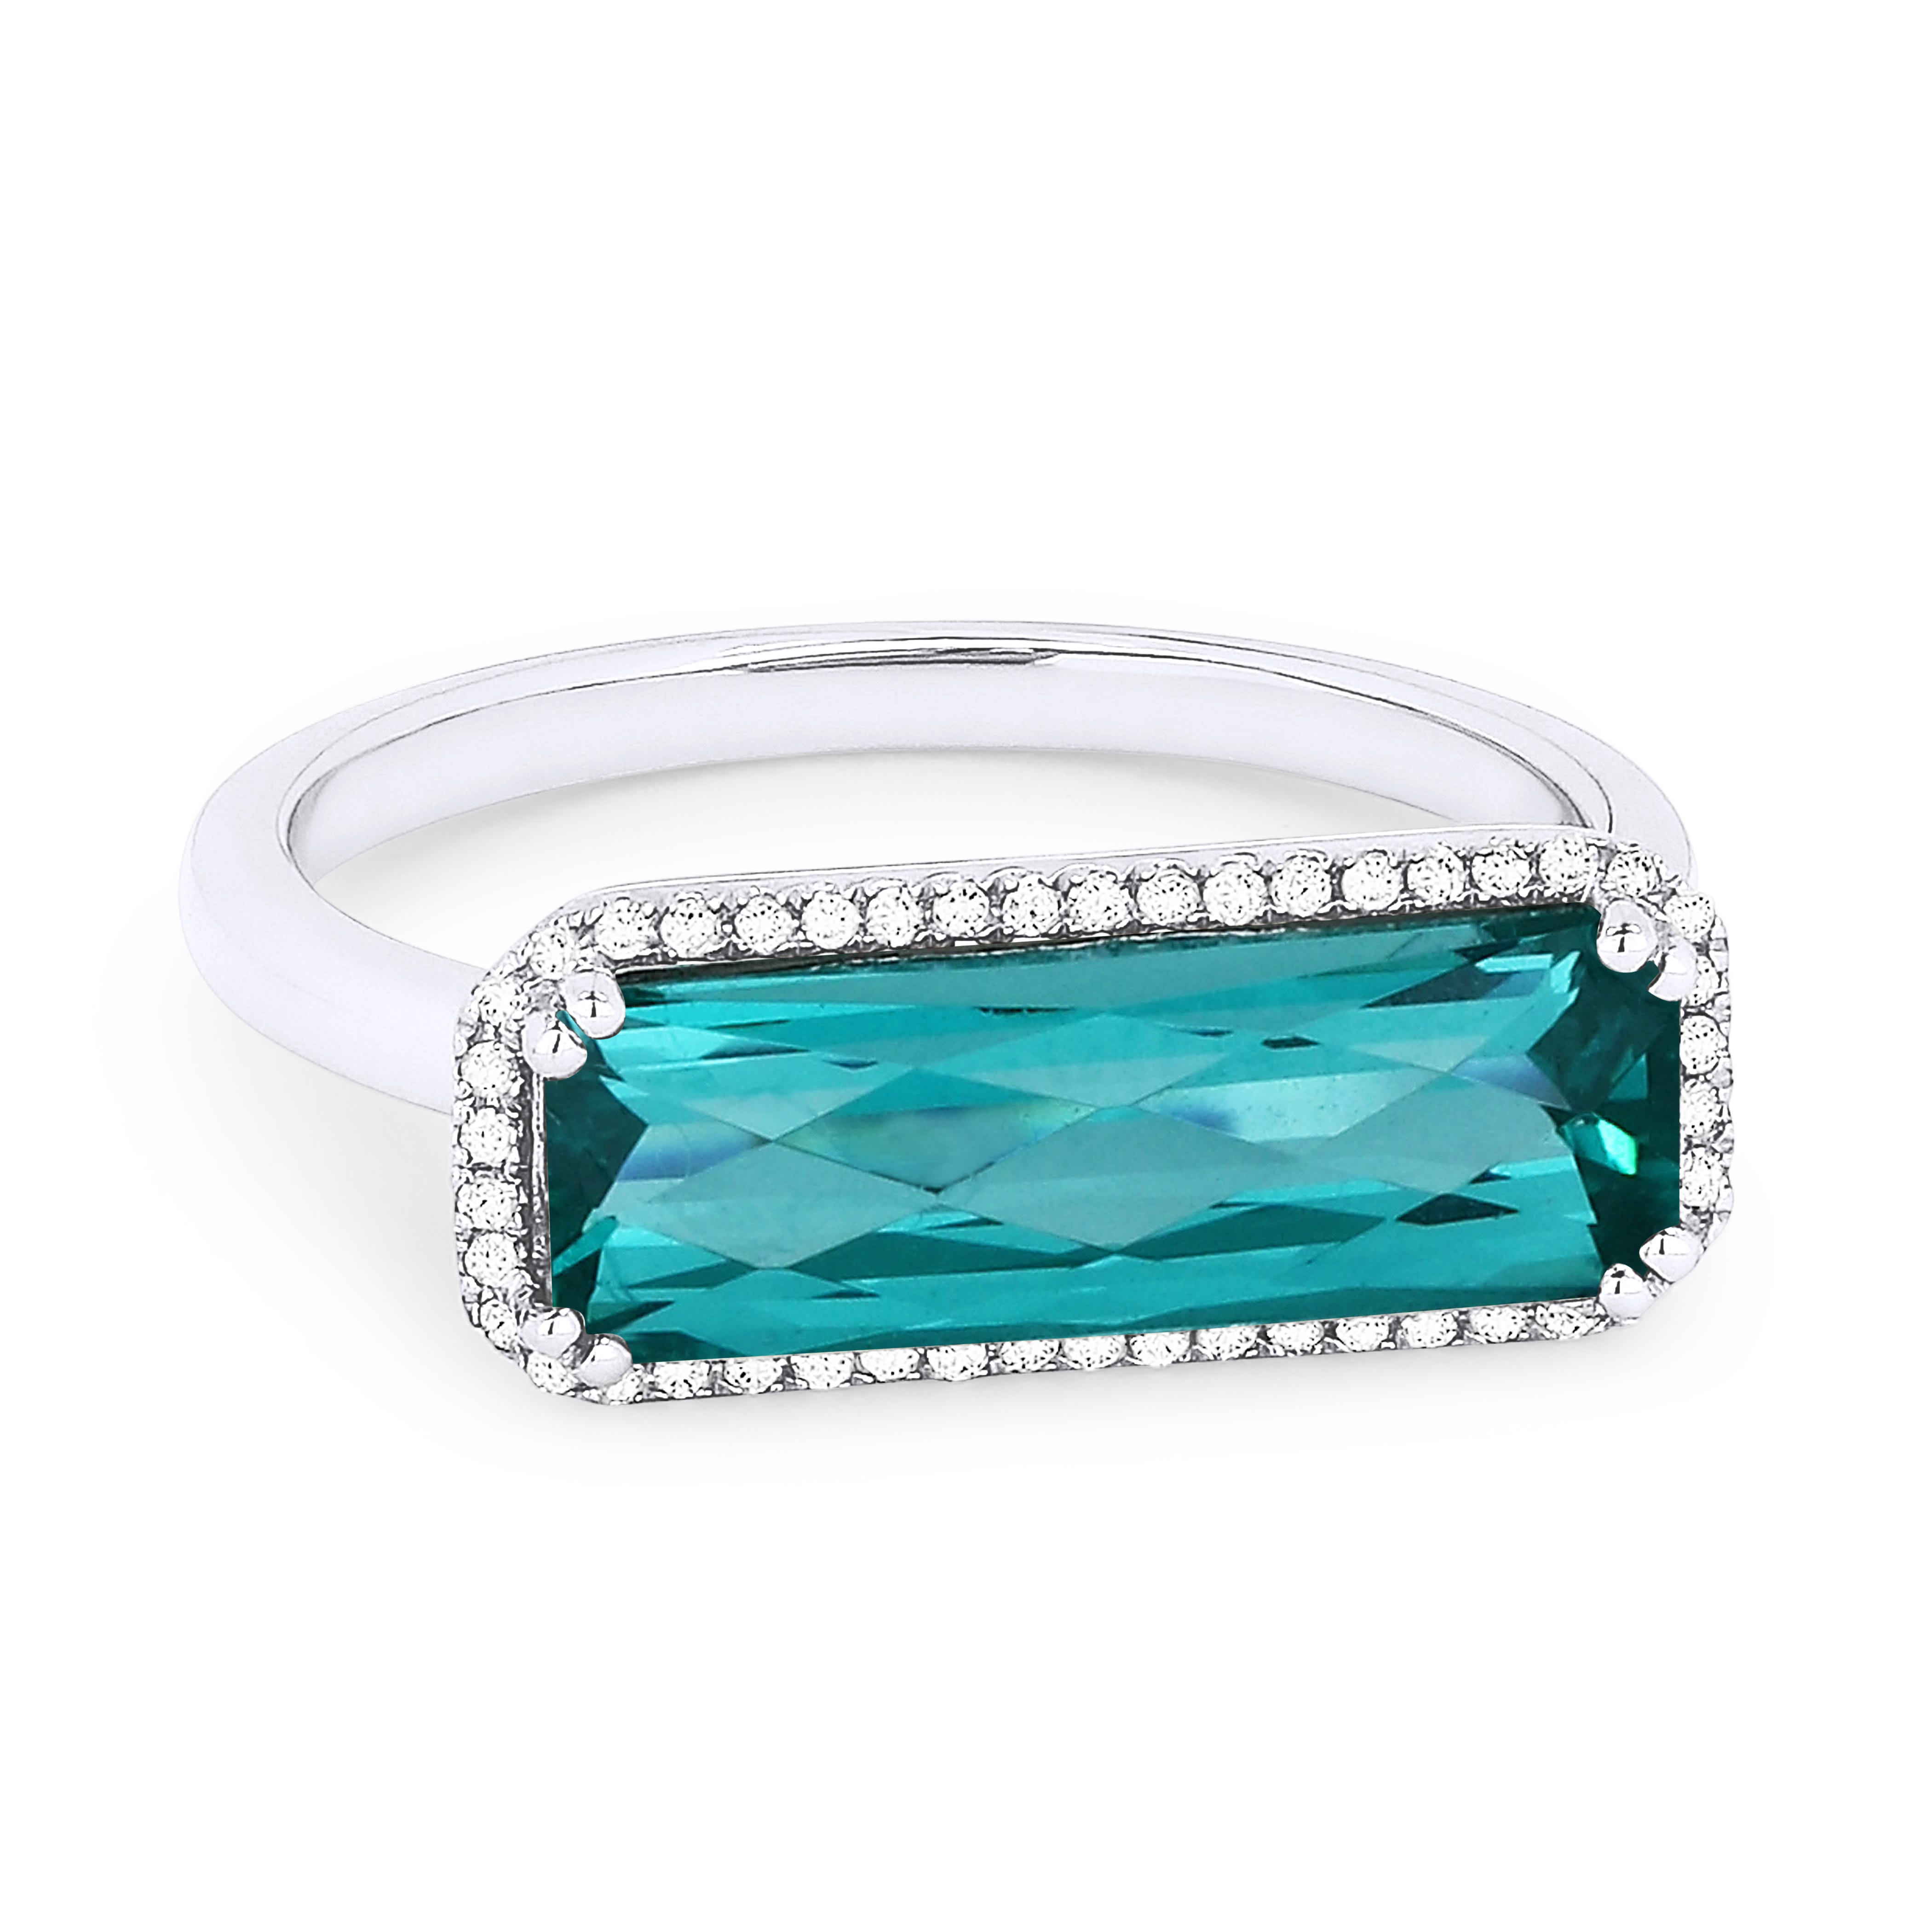 Fiji Blue Sideway Created Spinel & Diamond Ring in 14k White Gold